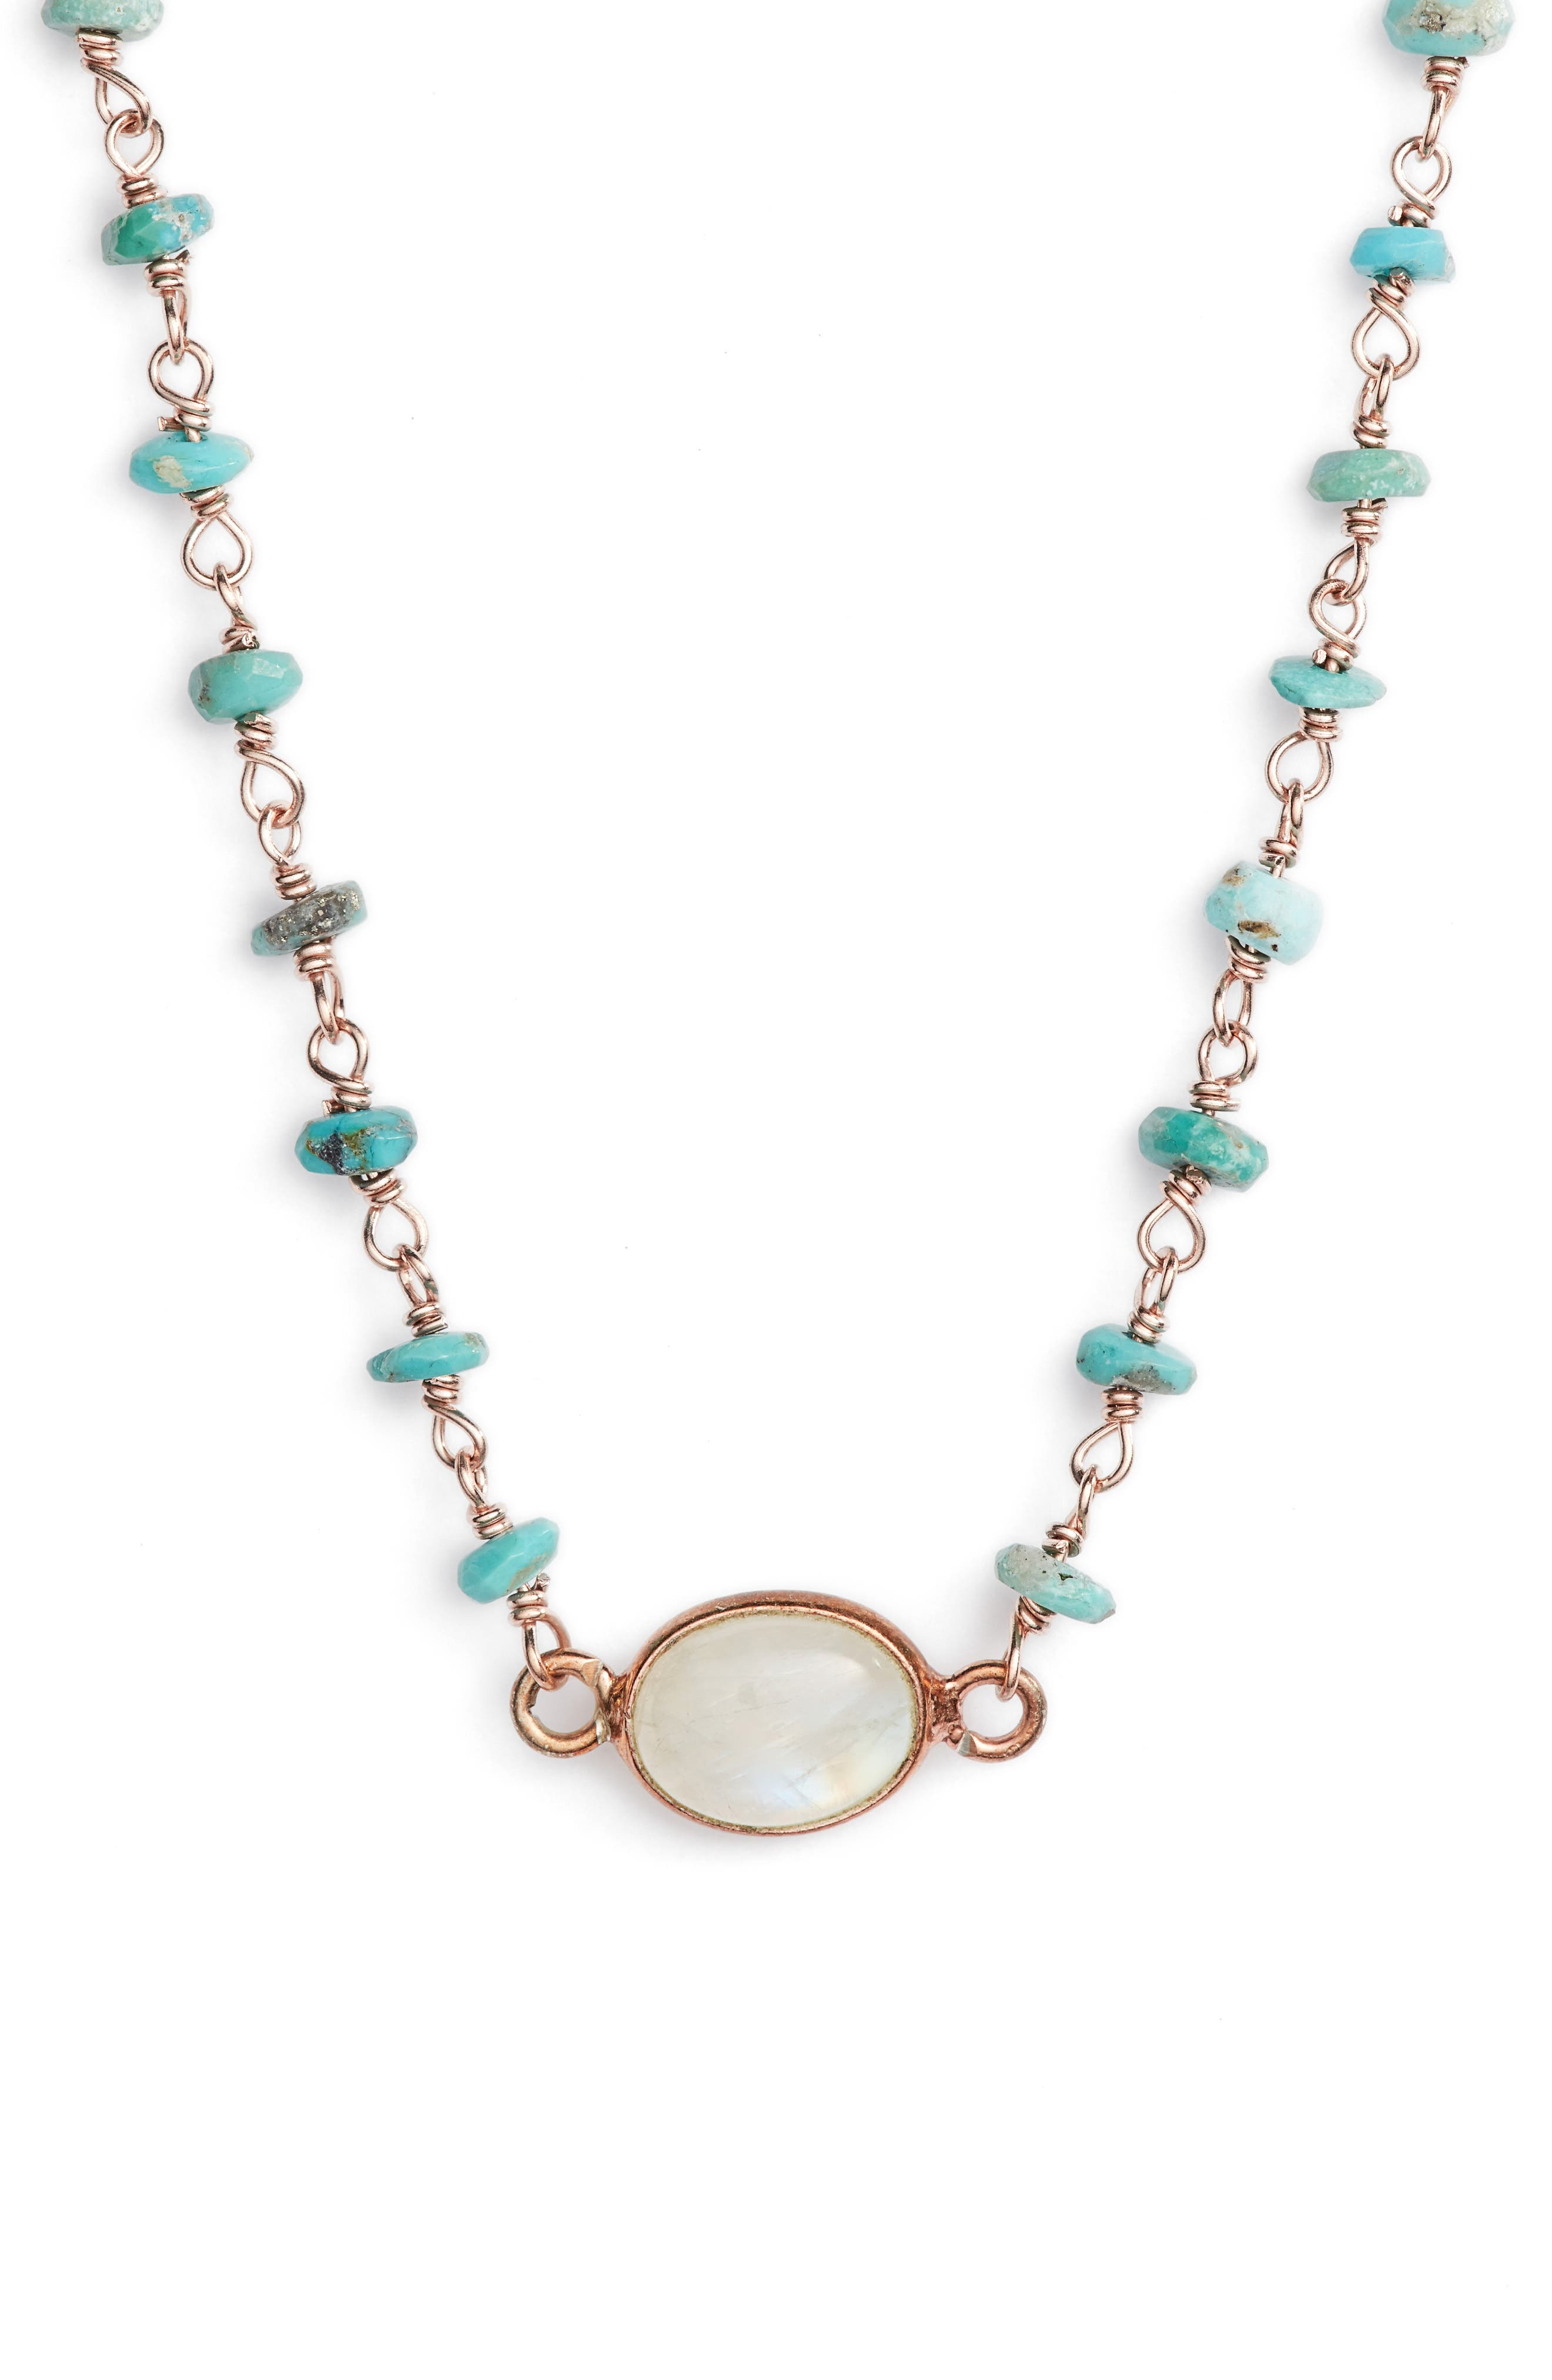 Semiprecious Stone Collar Necklace,                             Main thumbnail 1, color,                             Turquoise/ Moonstone